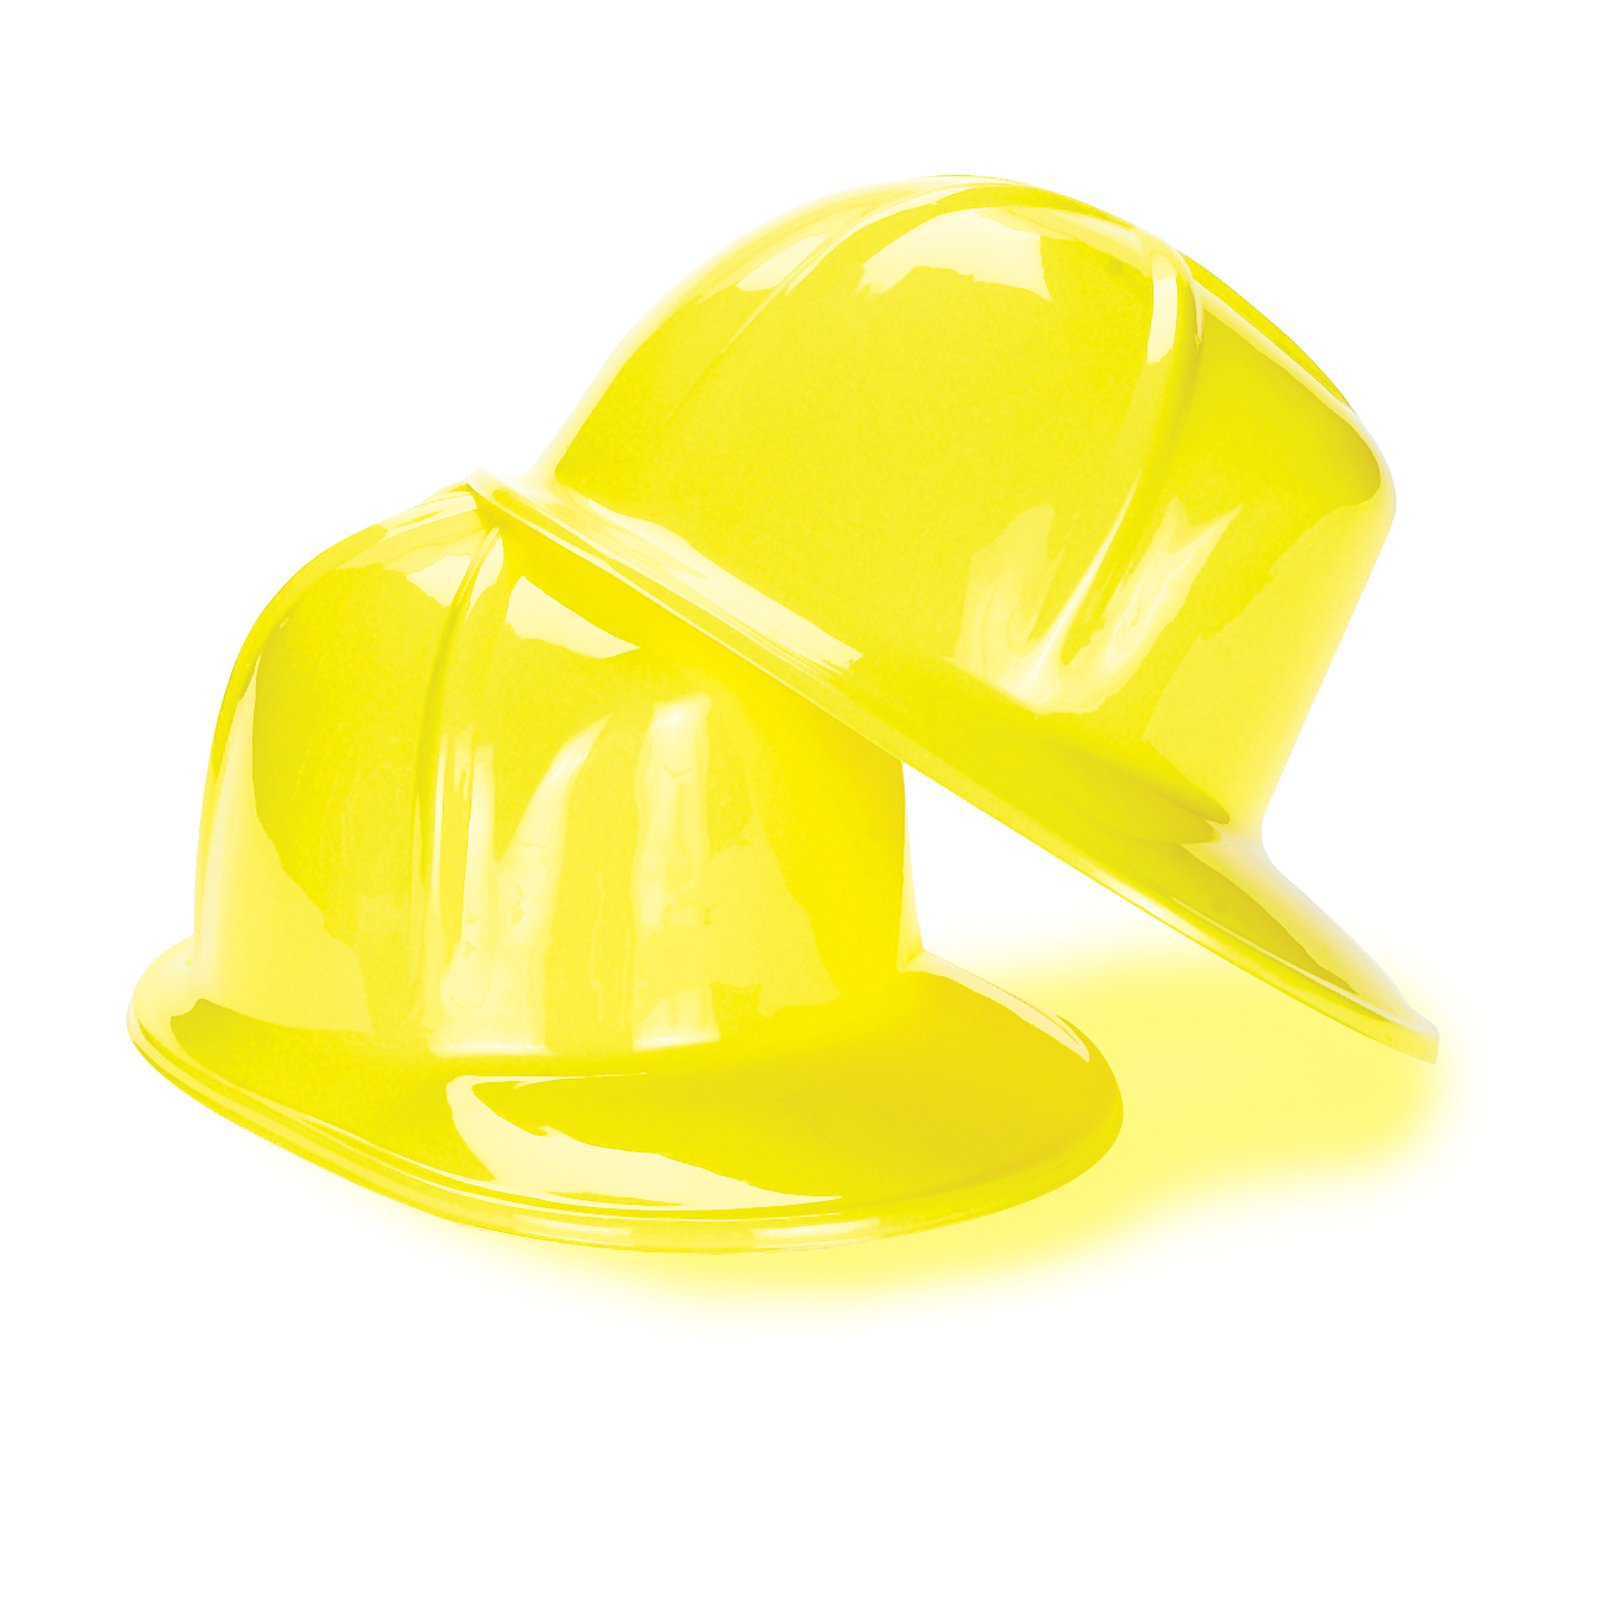 Construction Party Hard Hat (1 count)